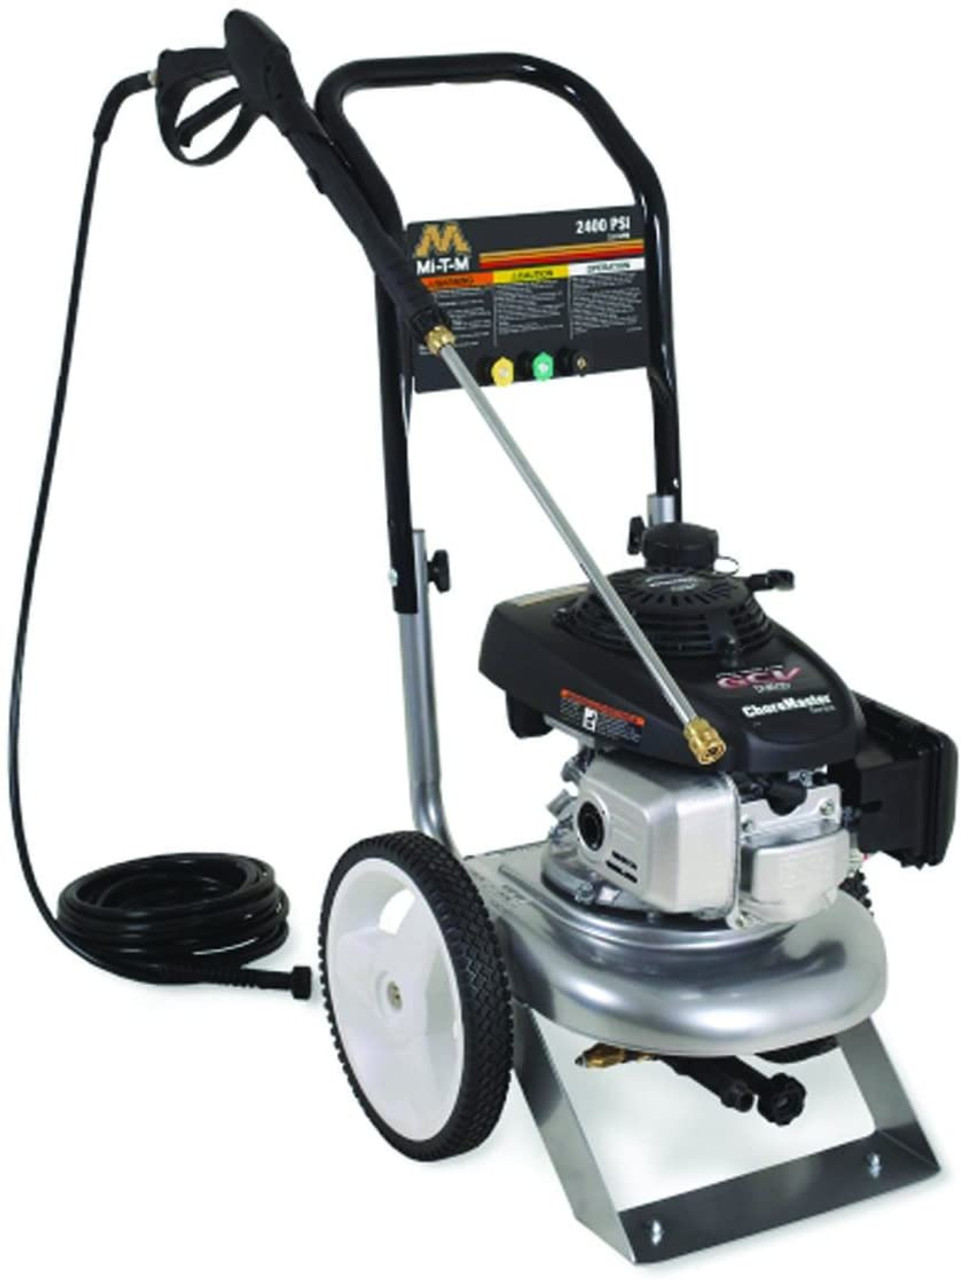 2600 PSI Pressure Washer - 160cc Honda OHC Engine (MI CV-2600-0MHC)